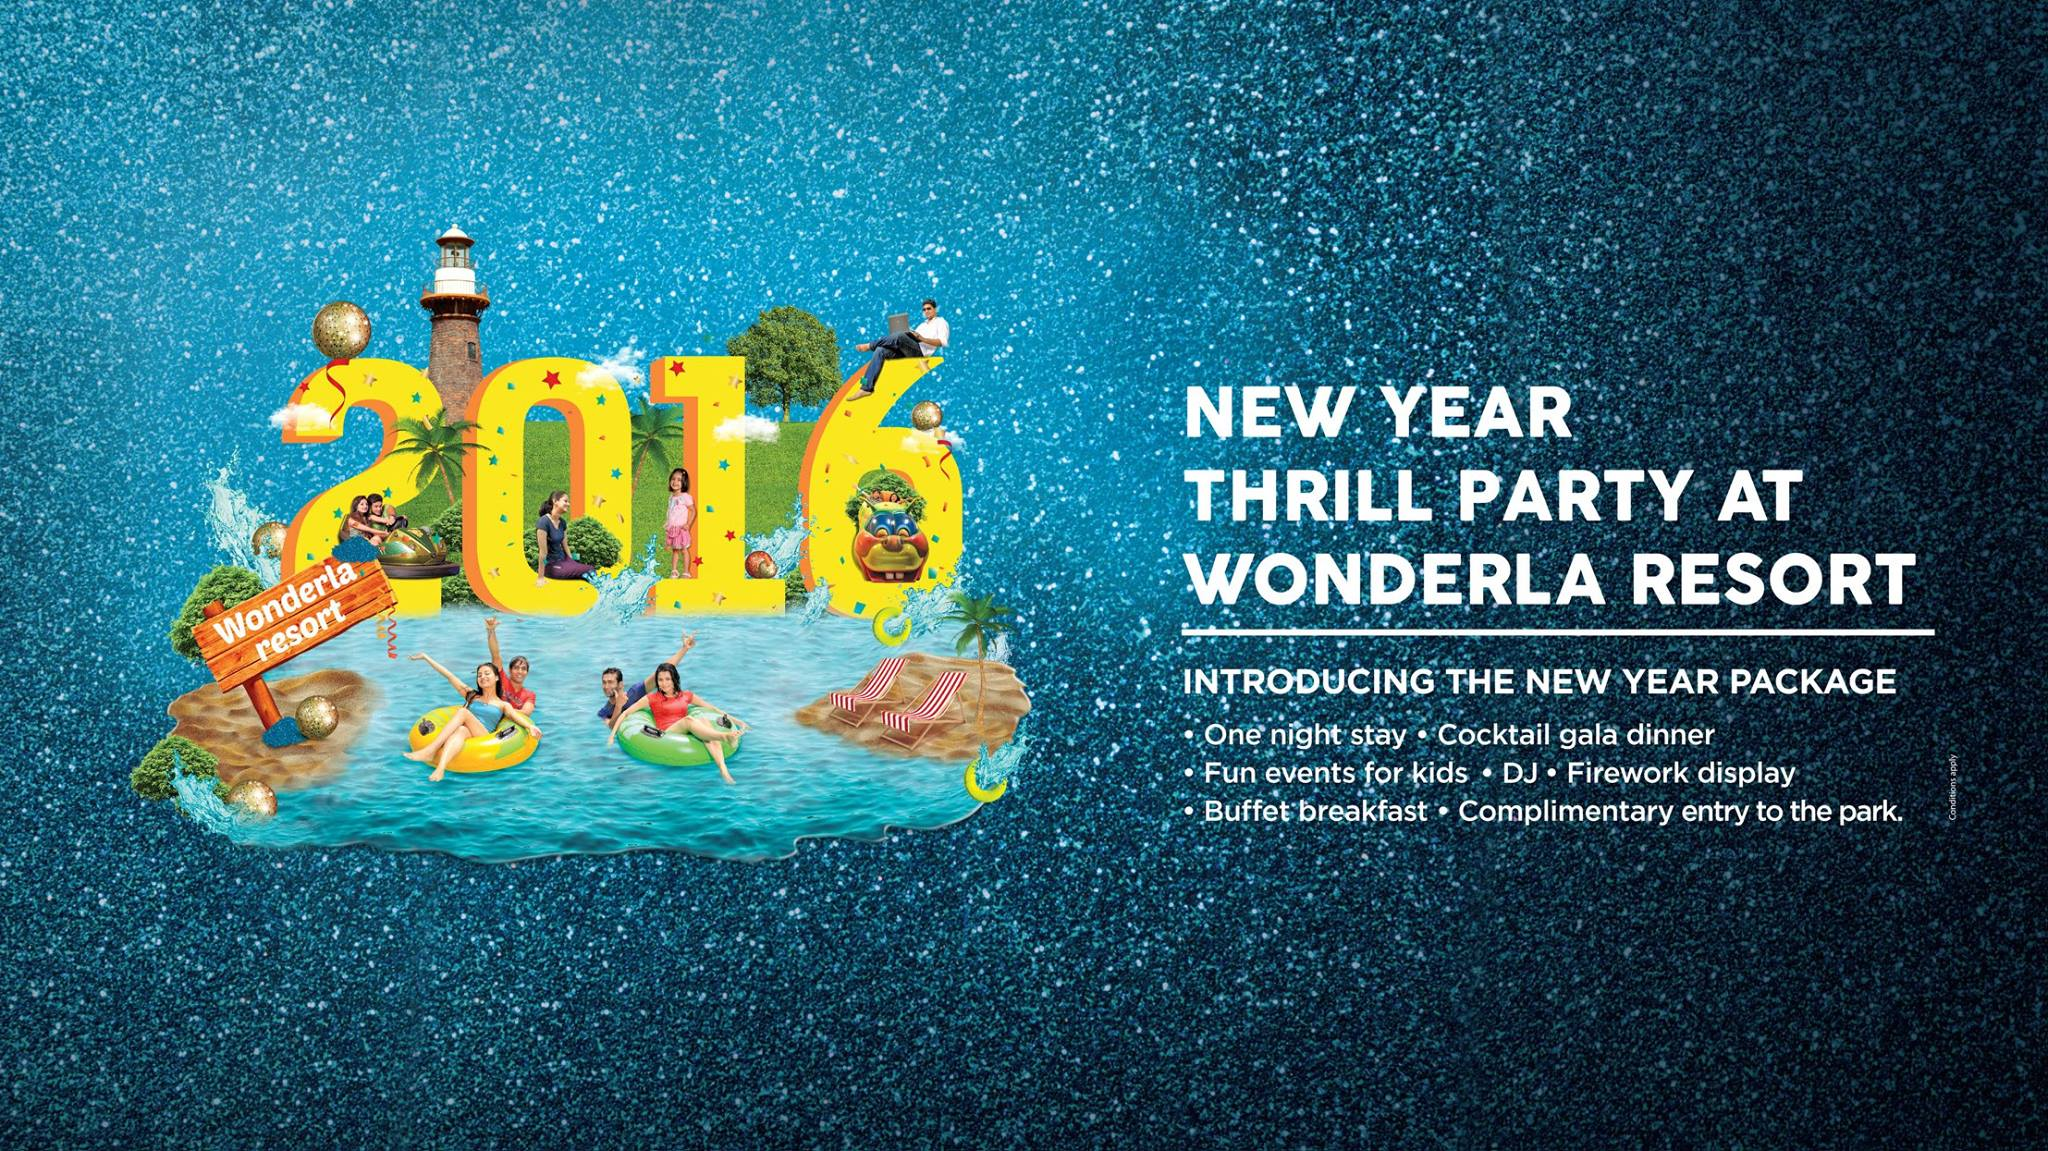 New Year Thrill Party at Wonderla Resort Cover Image